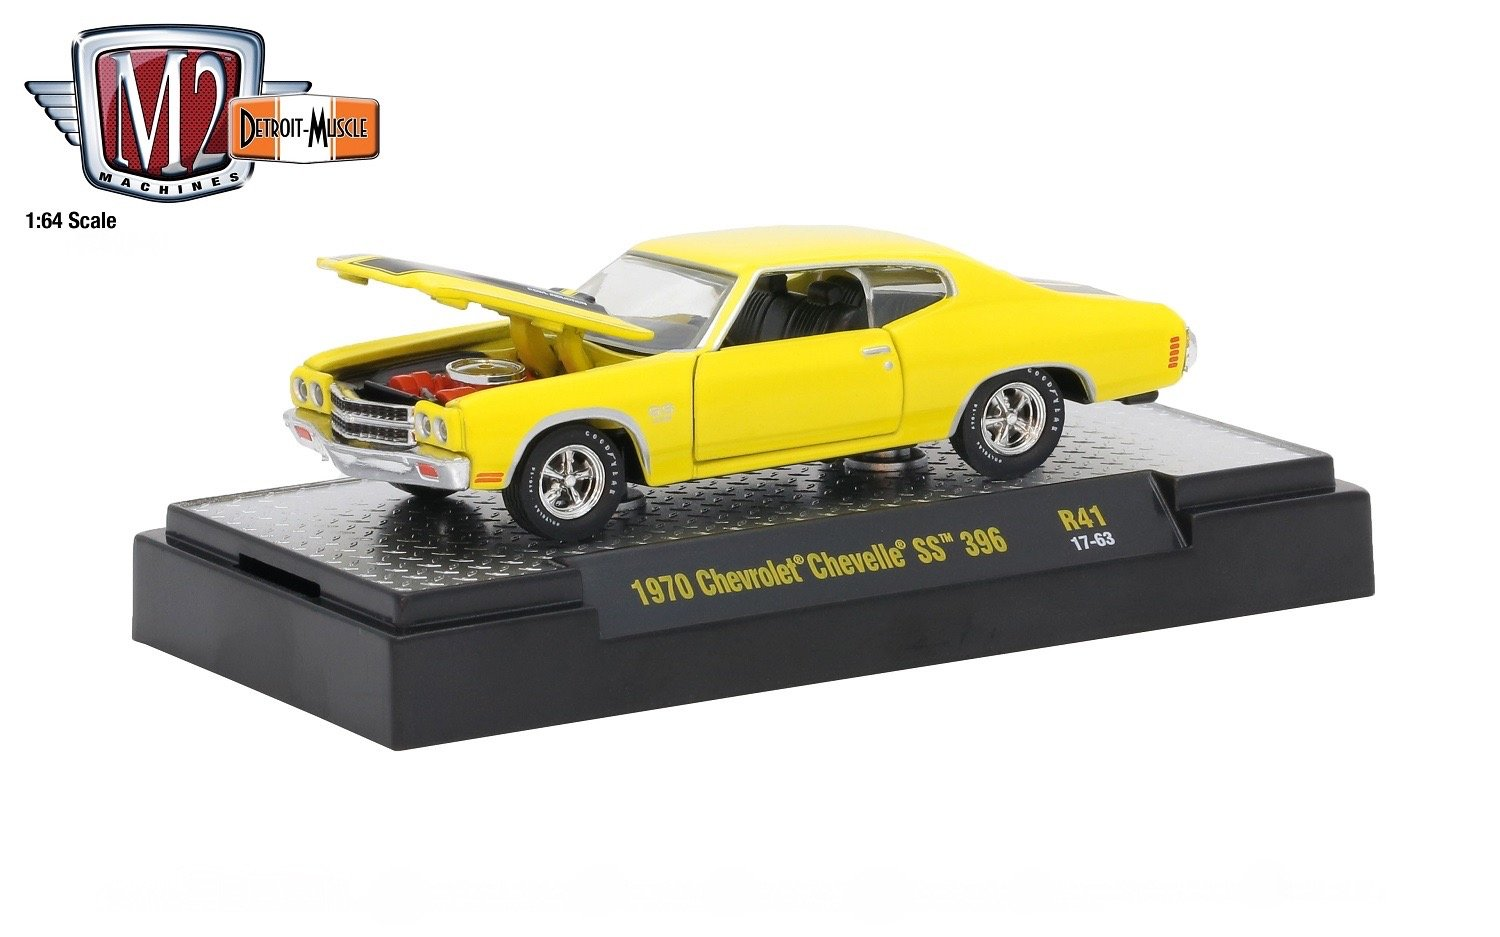 M2 Machines 1970 Chevrolet Chevelle Ss 396 Sunflower Chevy Hello I Have A 64 That Ive Yellow W Black Stripes Detroit Muscle Release 41 2018 Castline Premium Edition 164